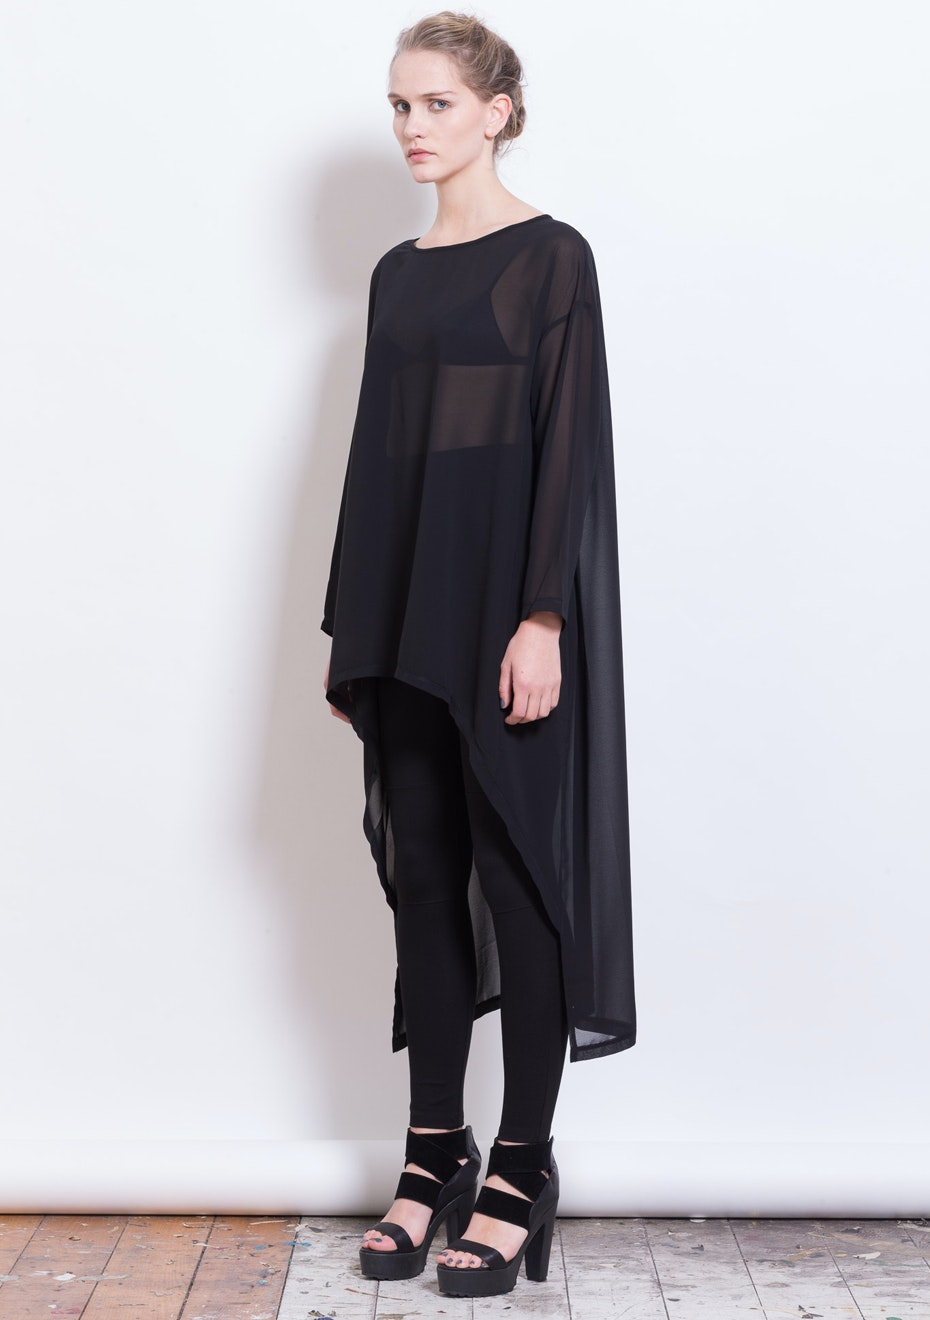 X-Plain - Kip top  - Black